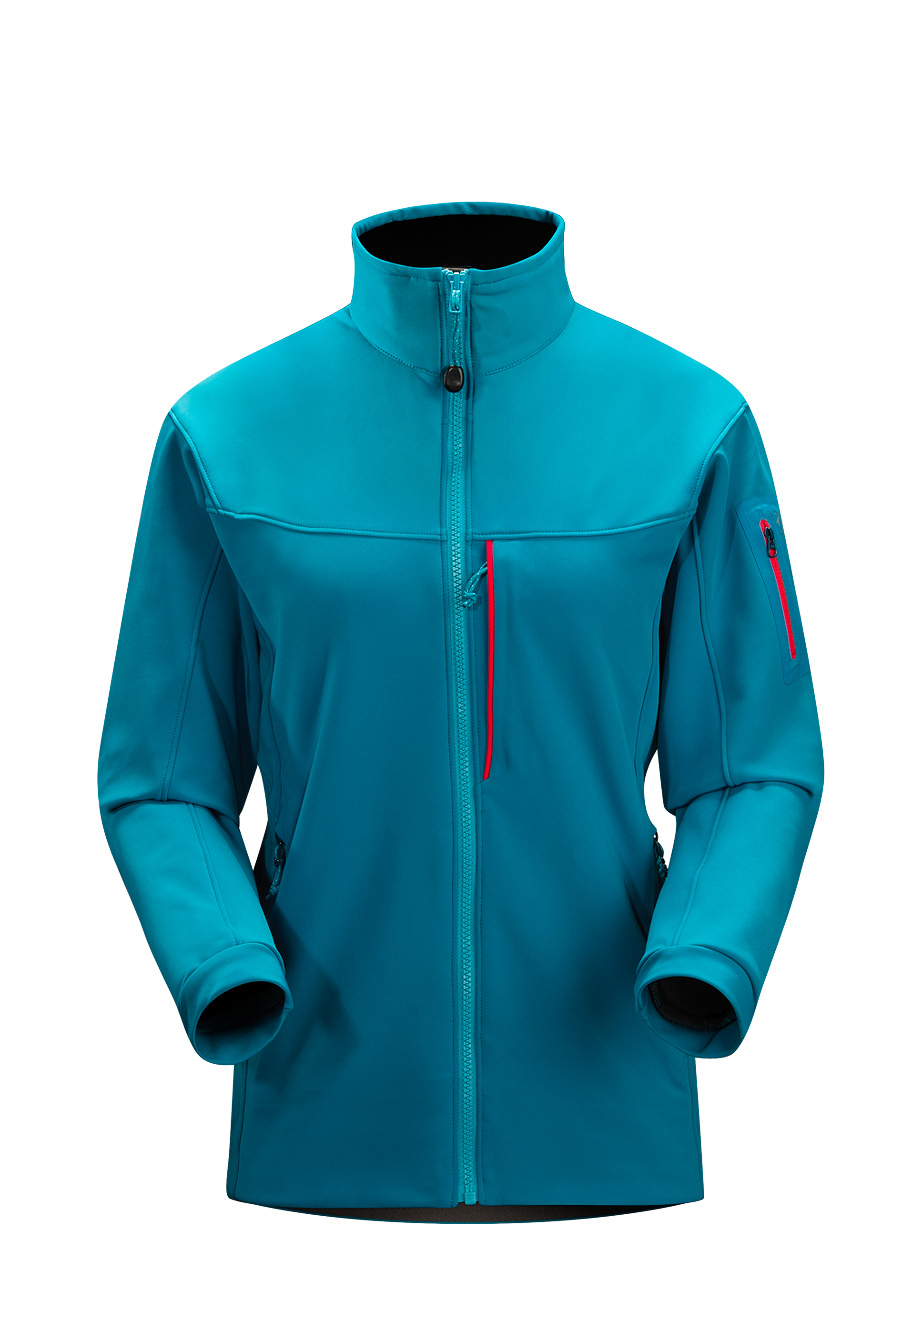 Arcteryx Jackets Women Bondi Blue Gamma MX Jacket